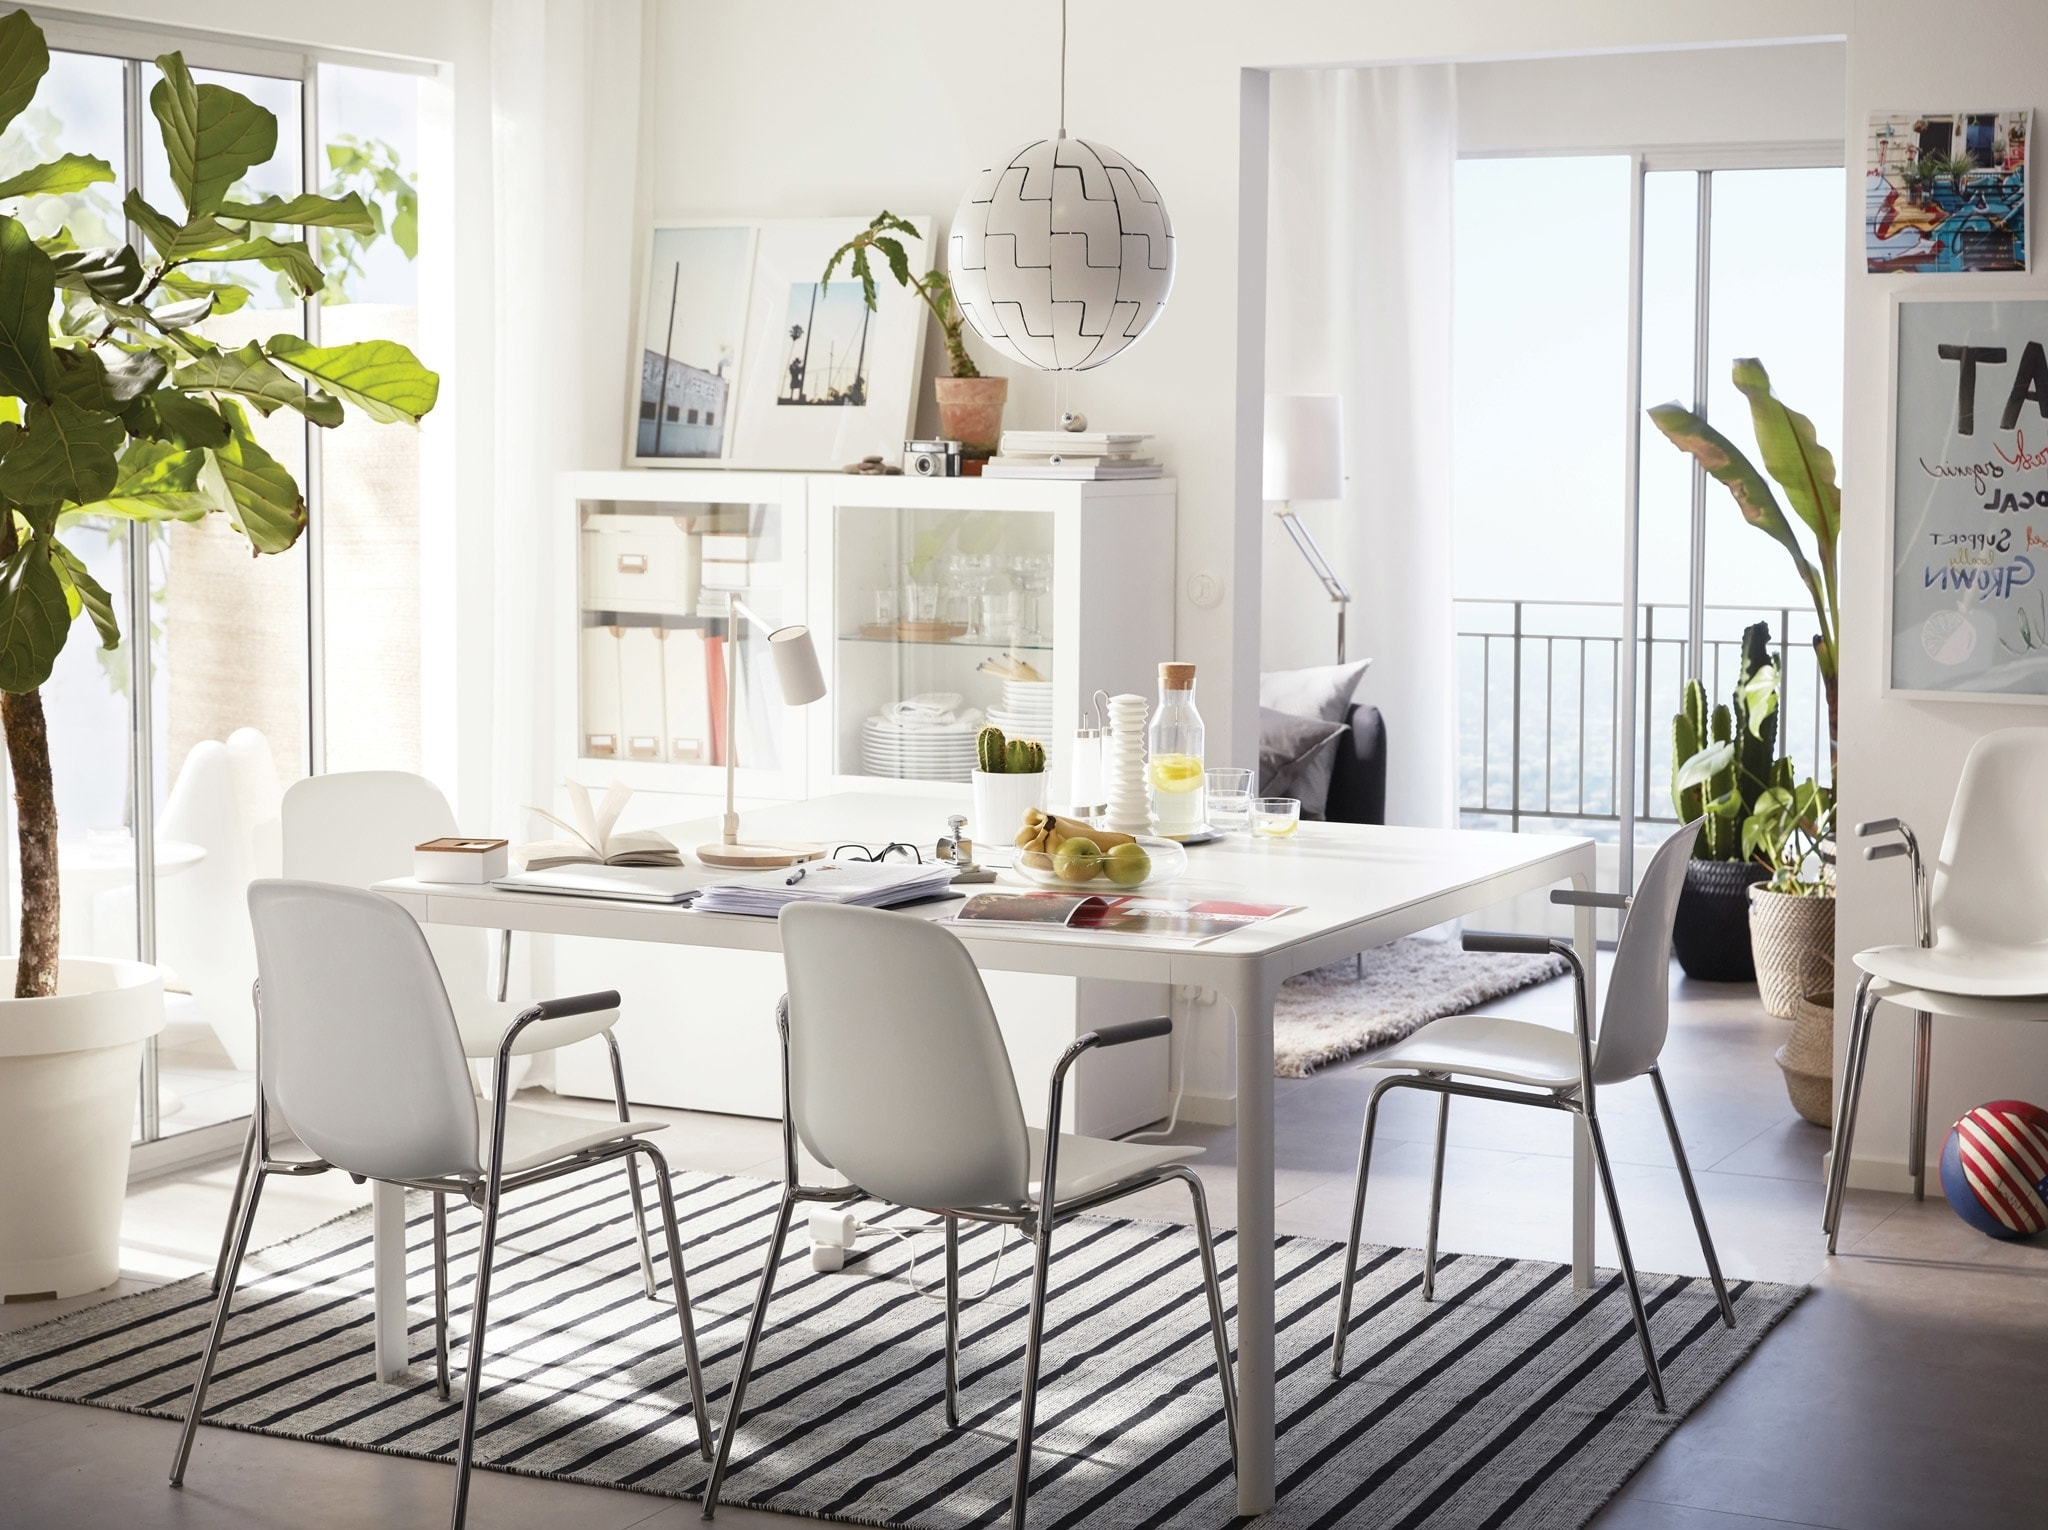 Ikea Intended For White Dining Tables And Chairs (View 9 of 25)